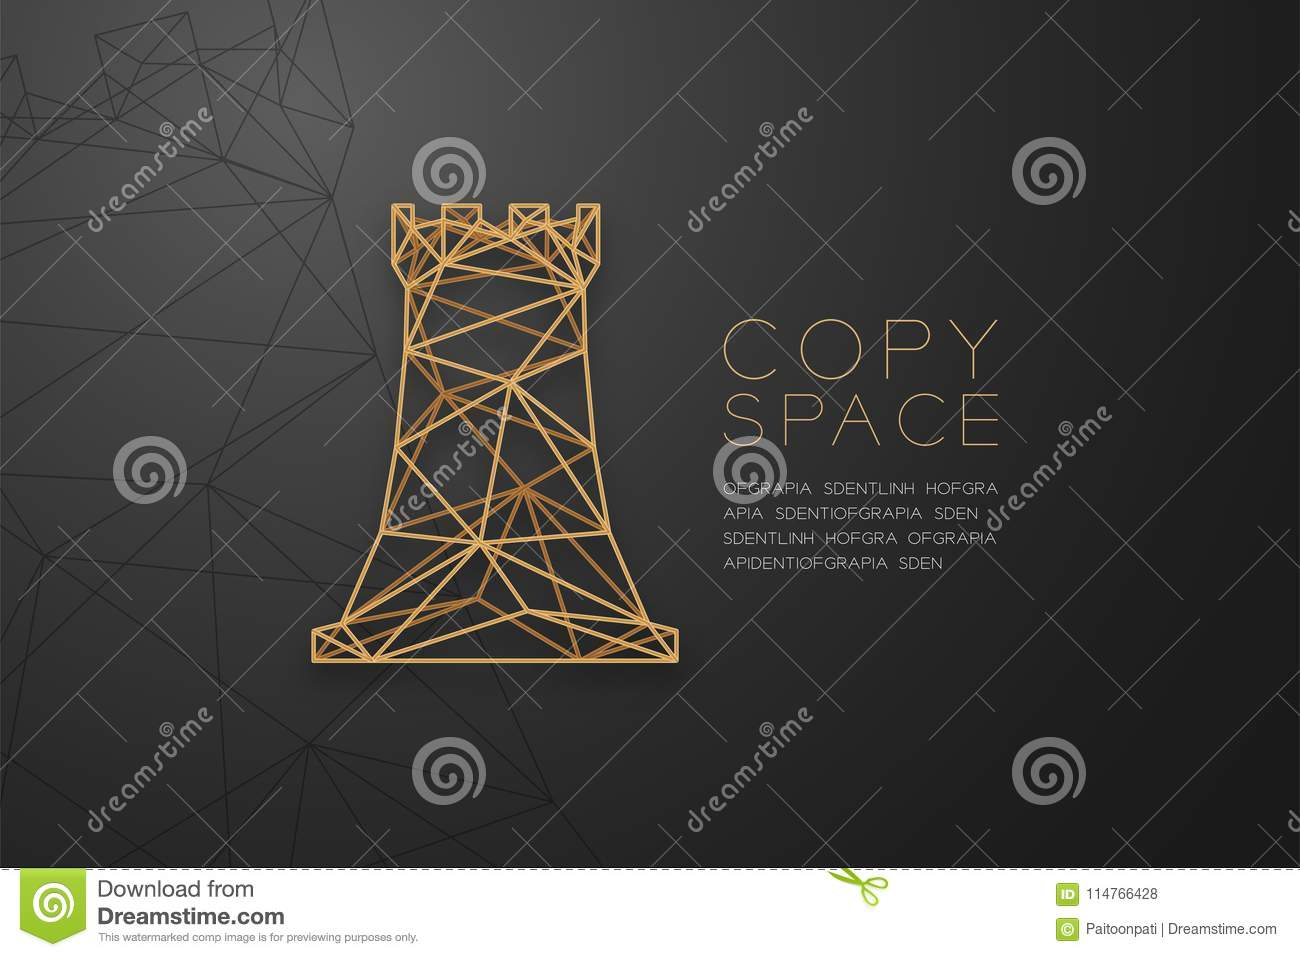 Chess Rook wireframe Polygon golden frame structure, Business strategy concept design illustration